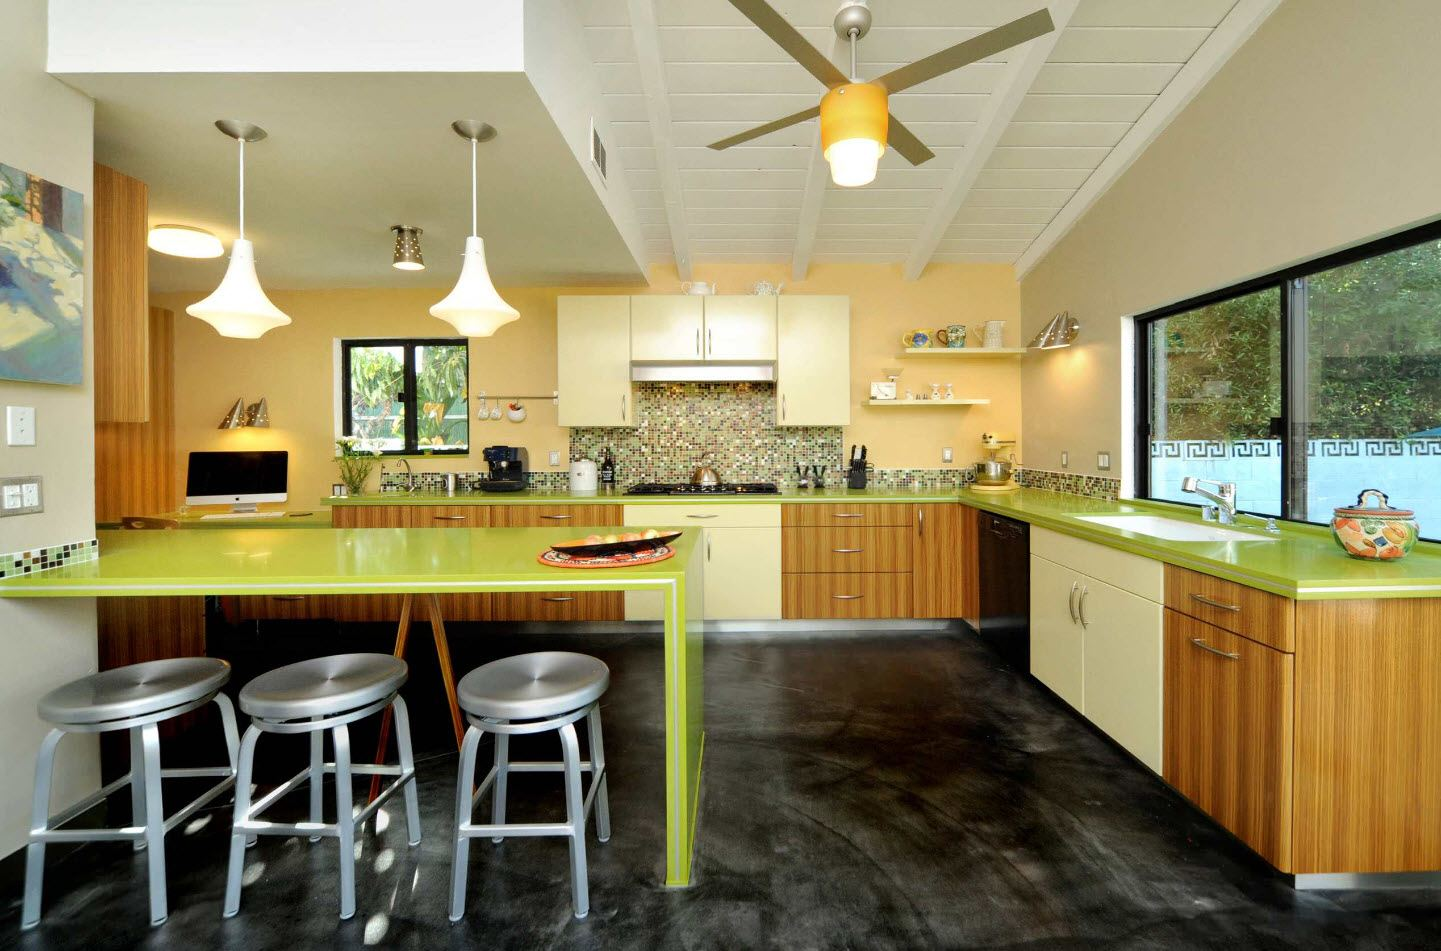 170 Square Feet Kitchen Design Ideas with Photos. Lime glossy bar counter and the dark concrete floor